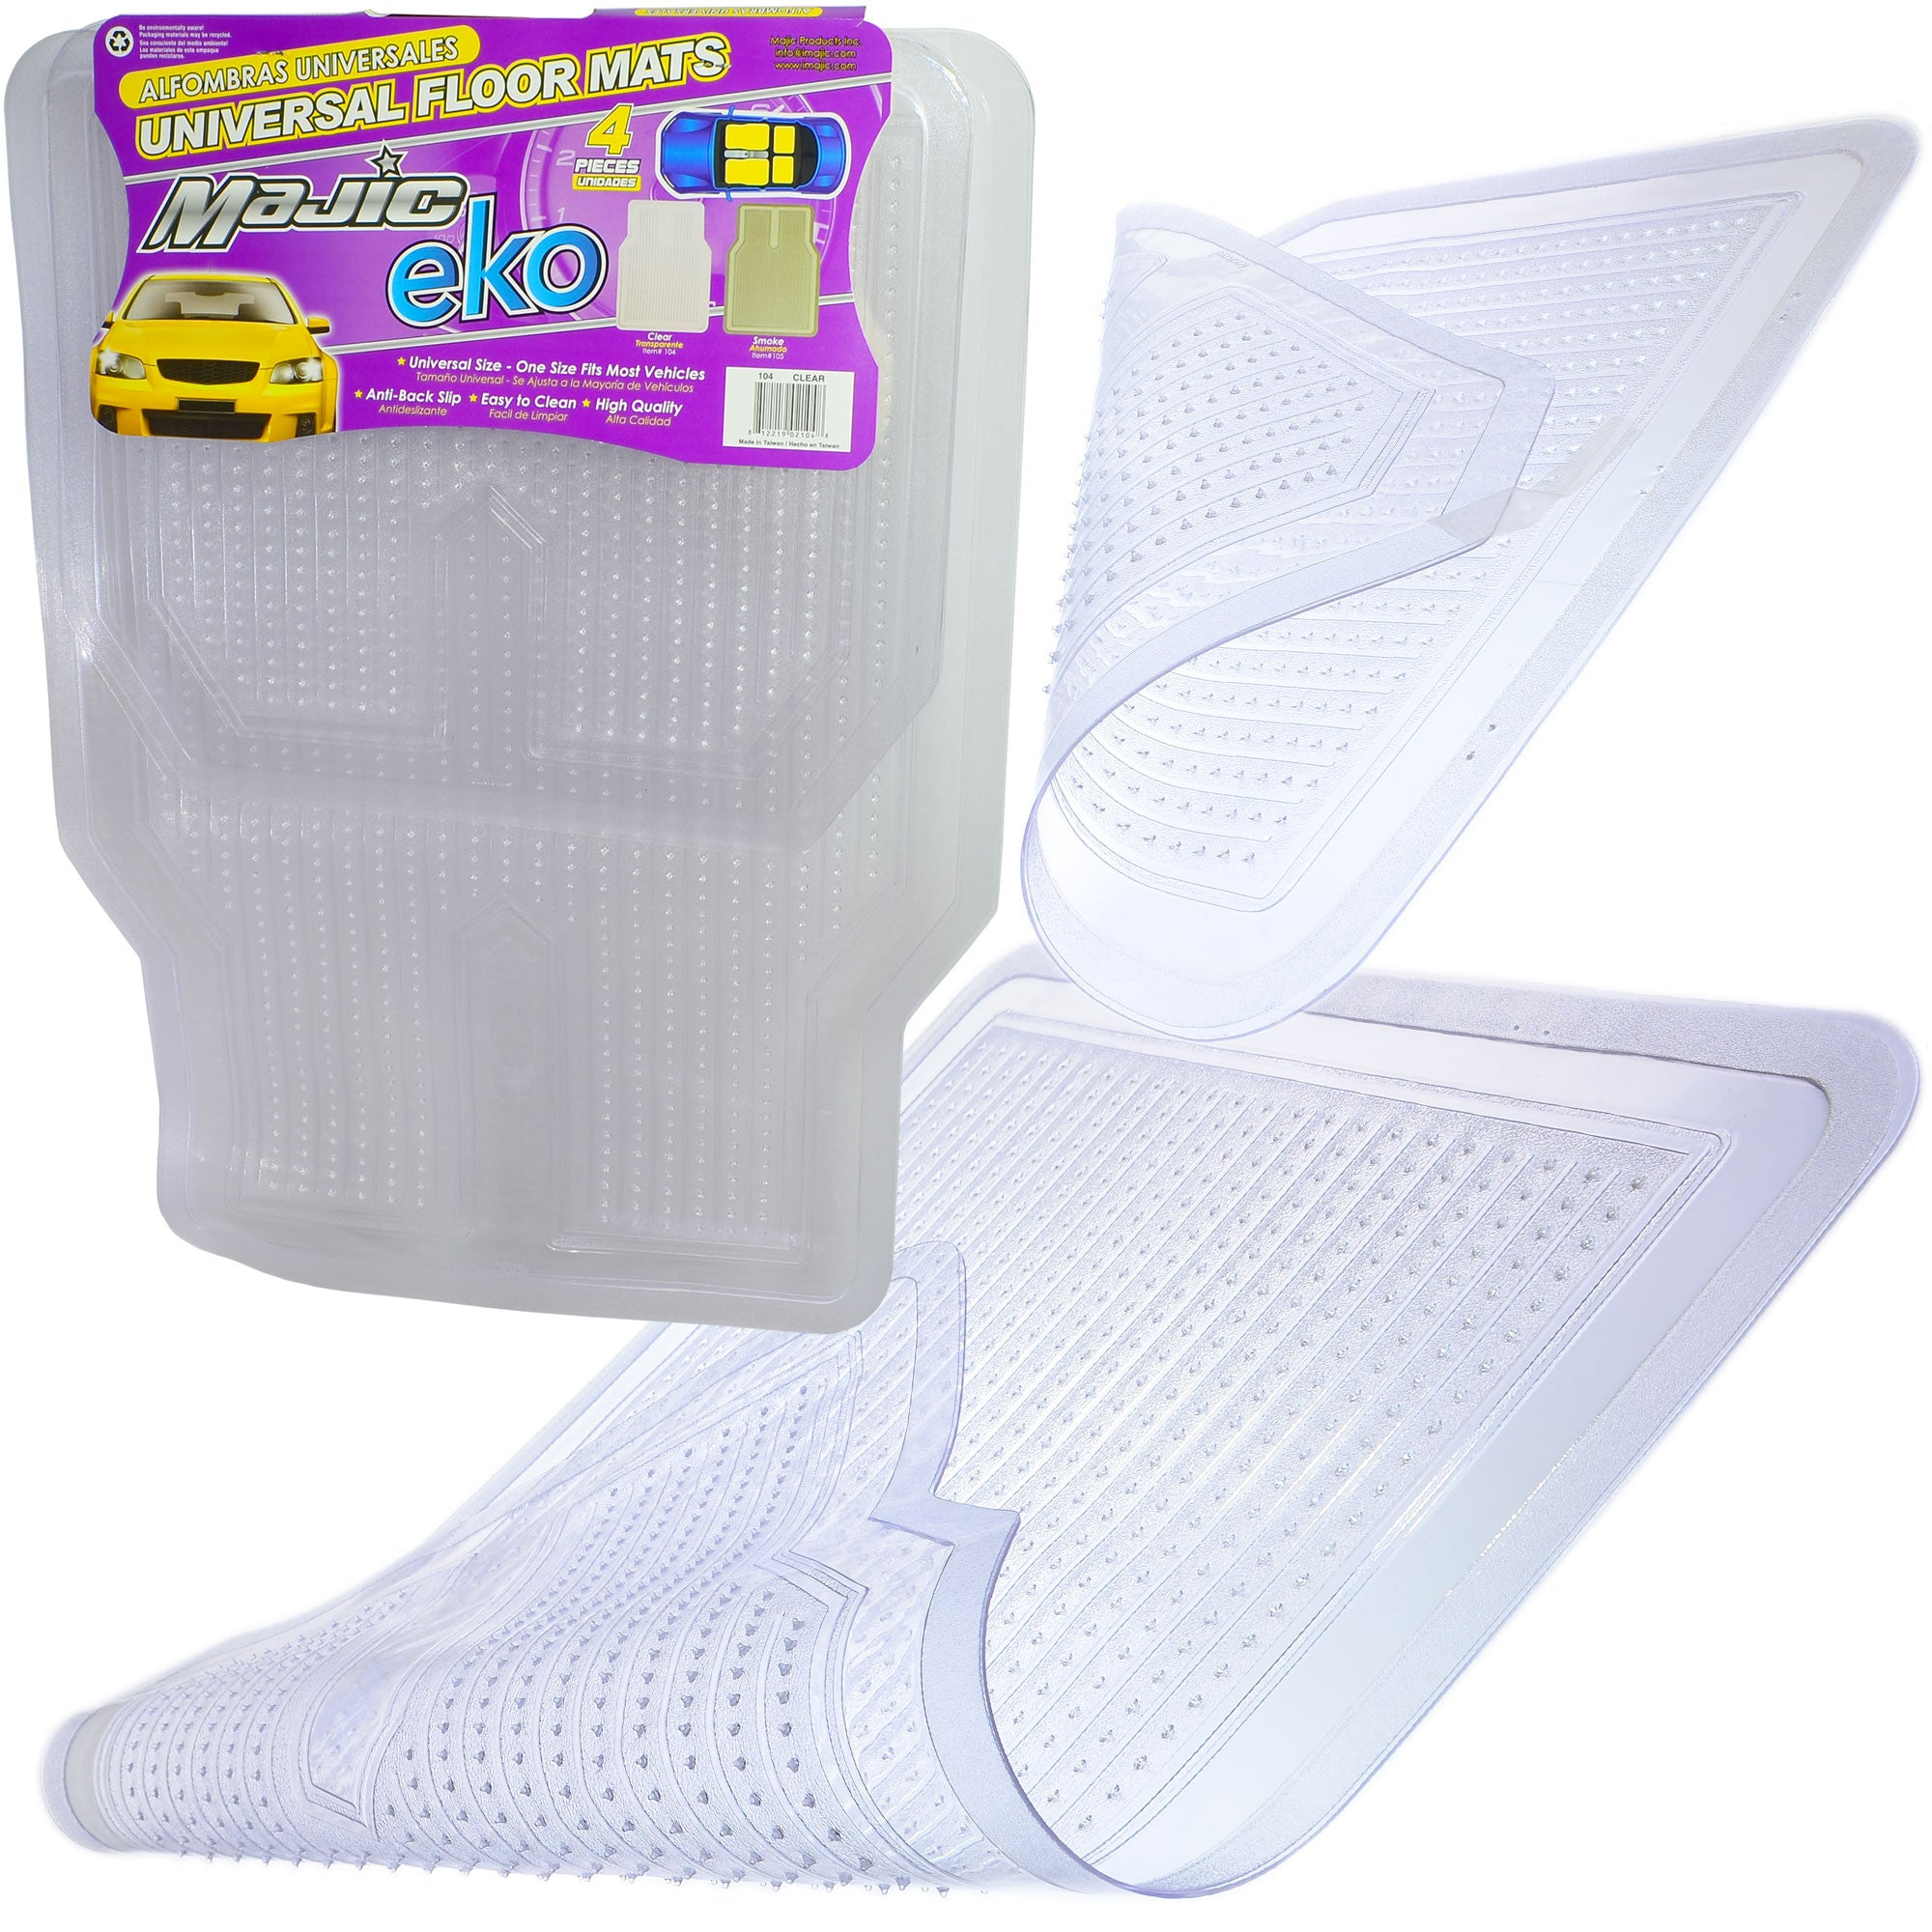 are hard offi staples floor love protector regarding chair under for hardwood clear depot cheap x carpet walmart nz chairs wood mat desk rug floors plastic mats recyclable office